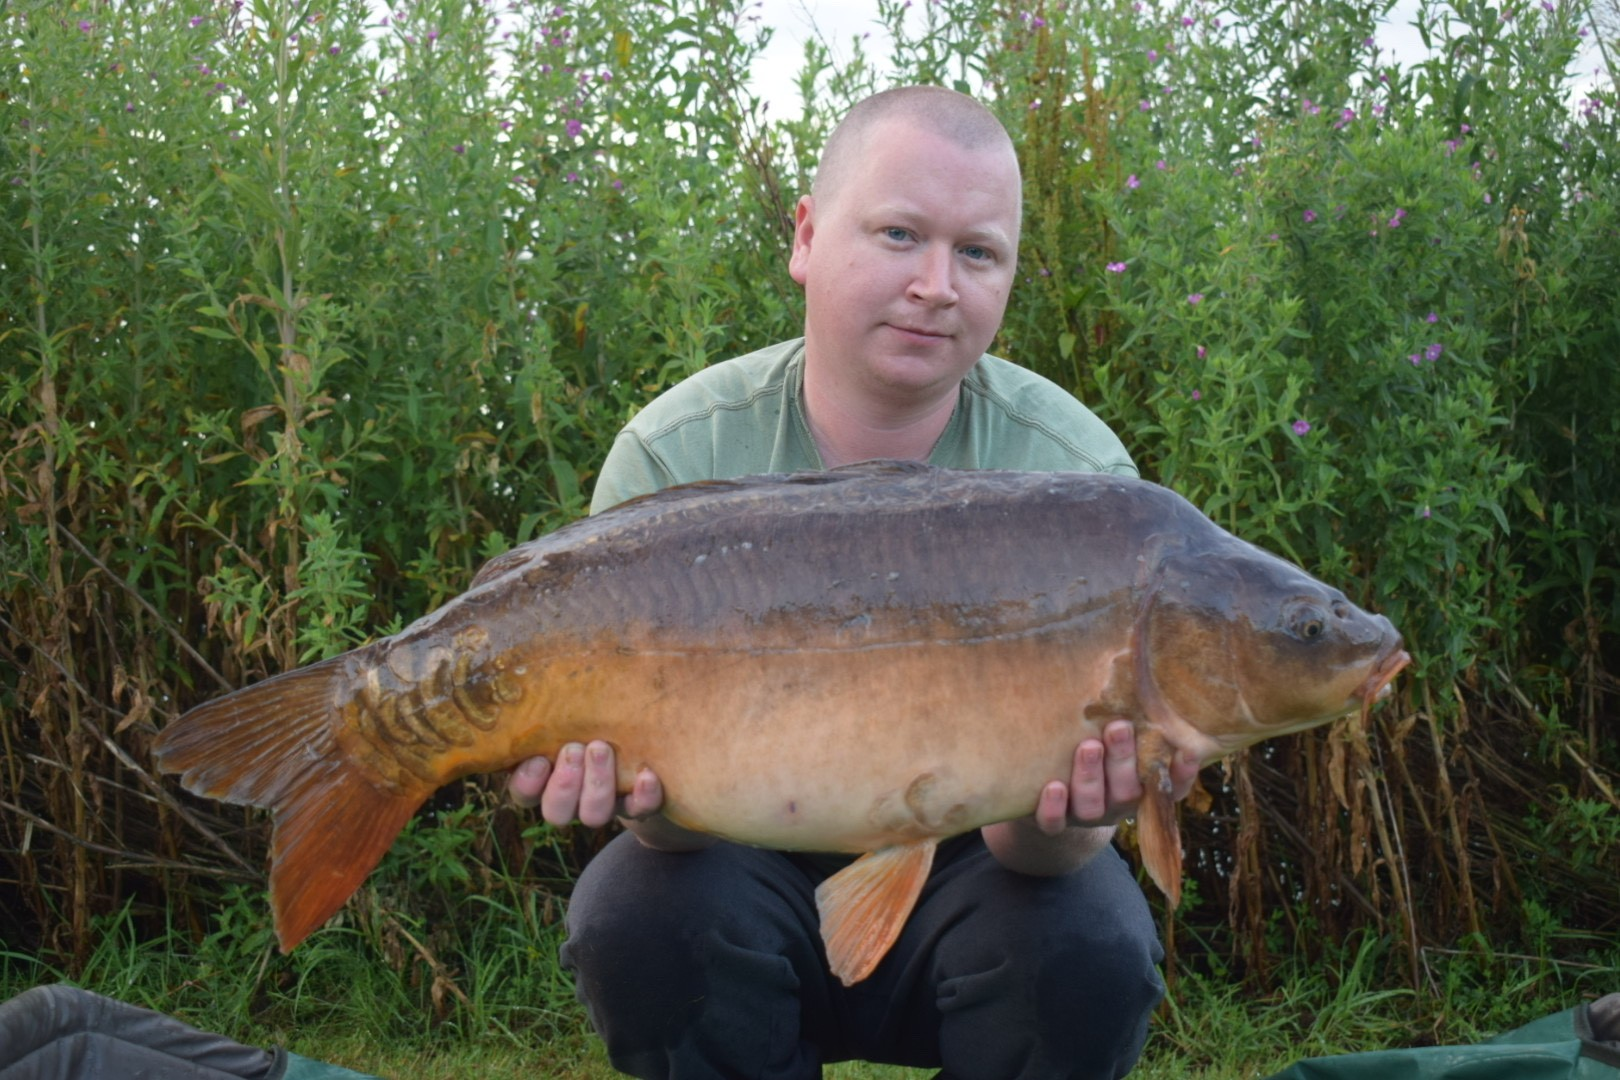 23lb 08oz  caught on